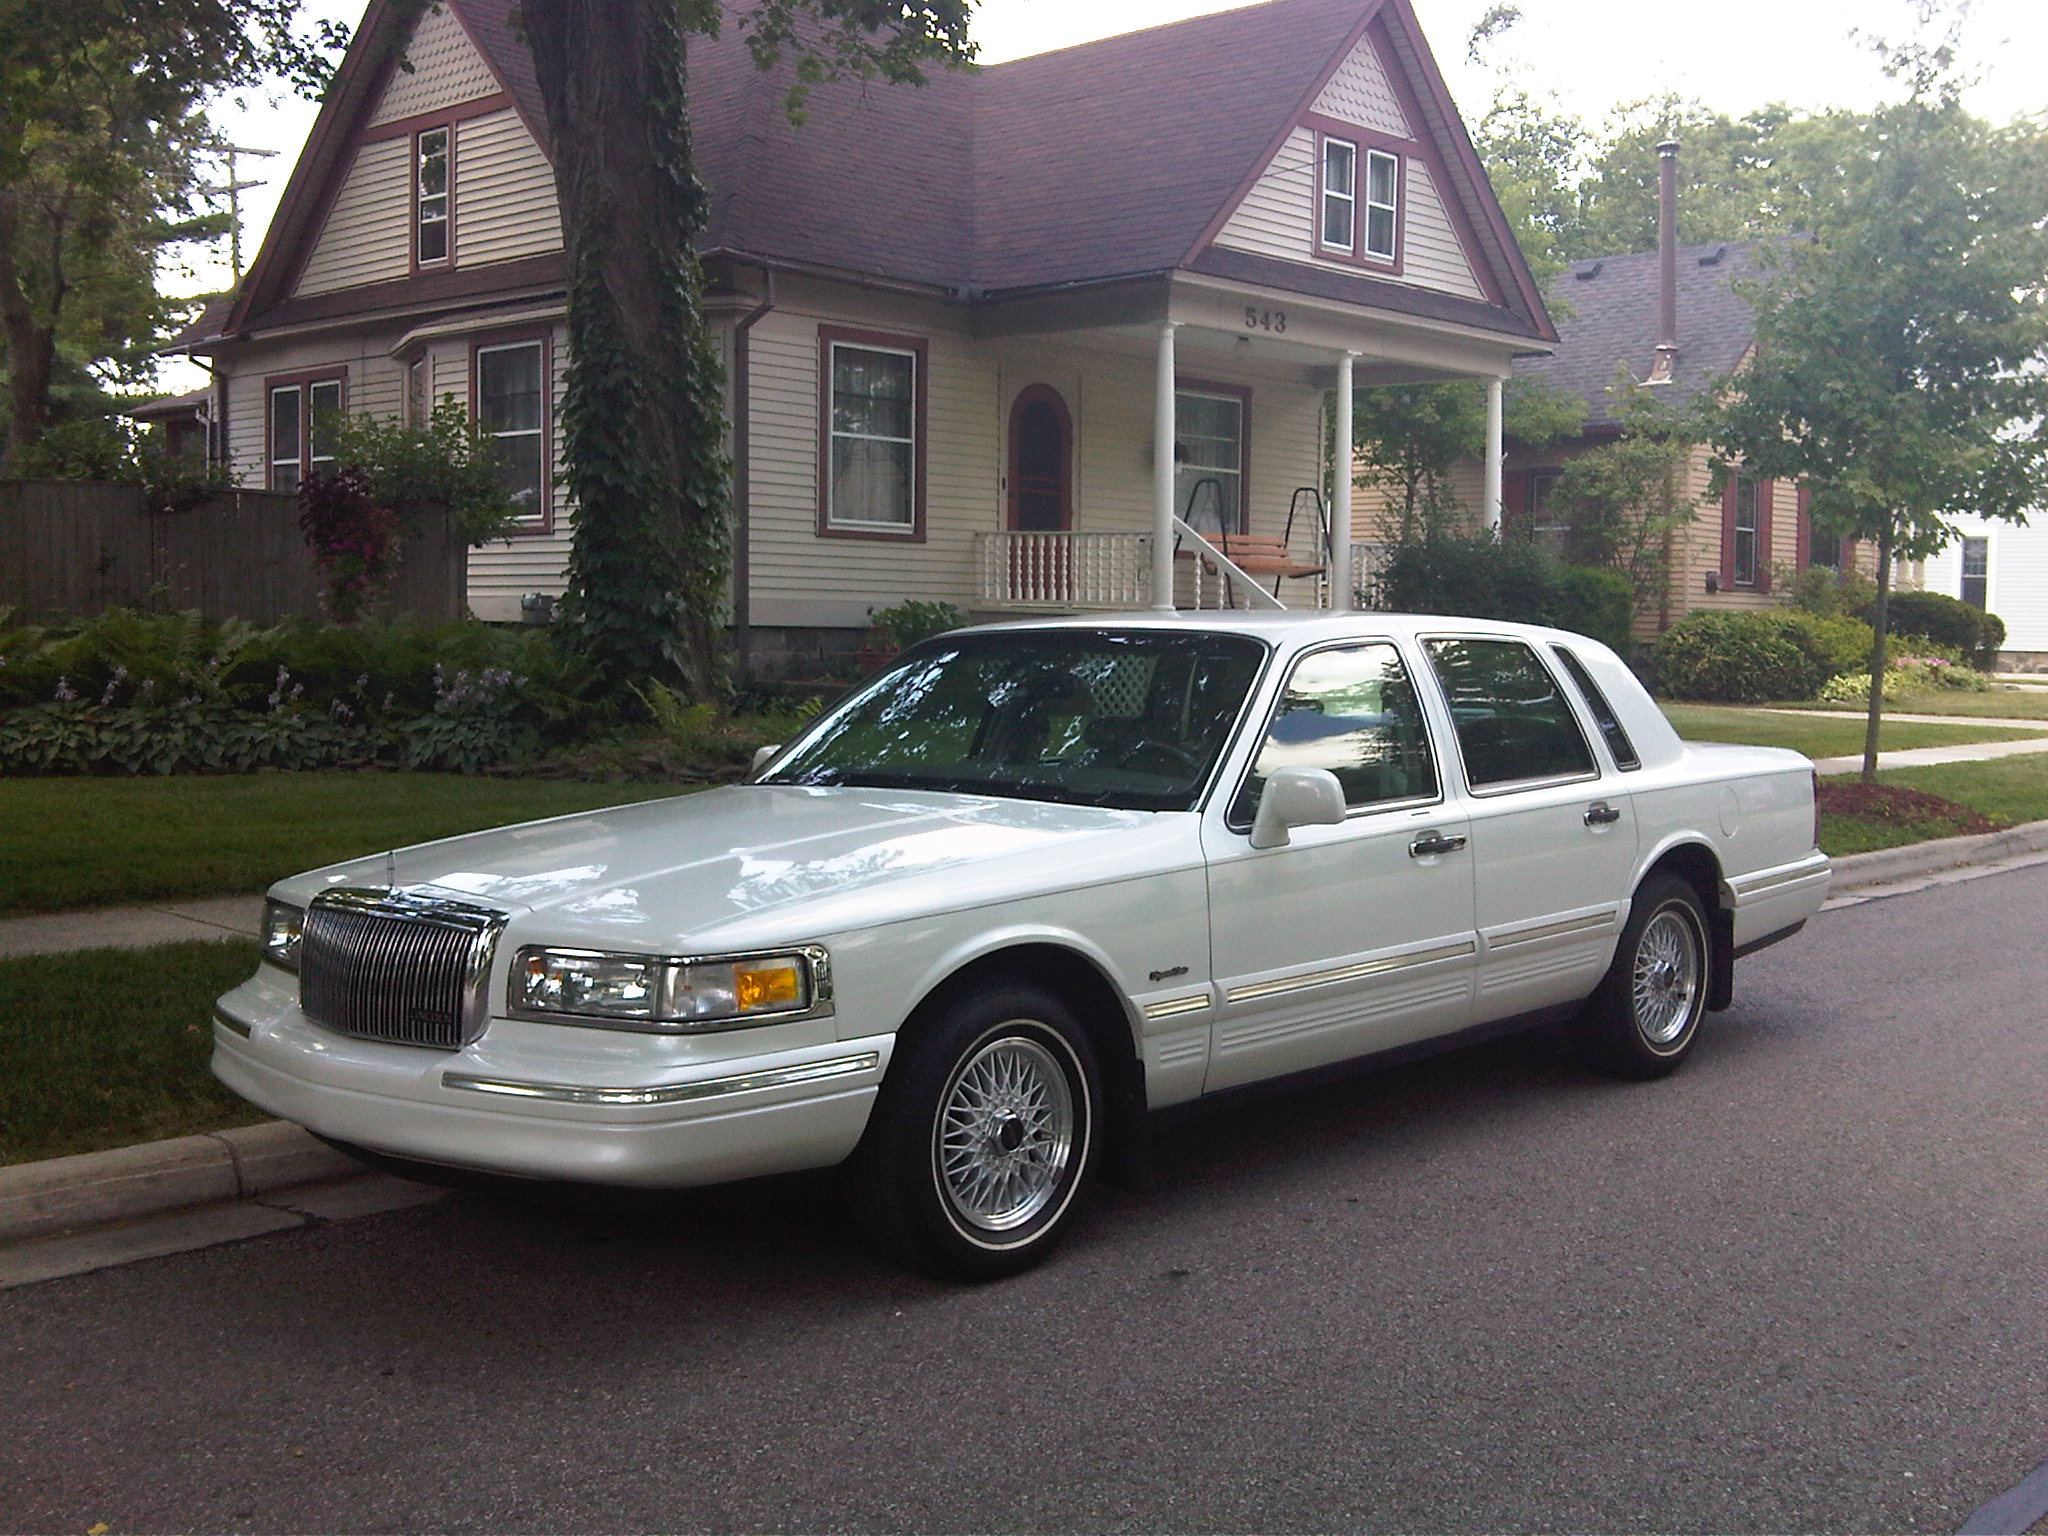 1997 lincoln town car limo. lincoln town car front